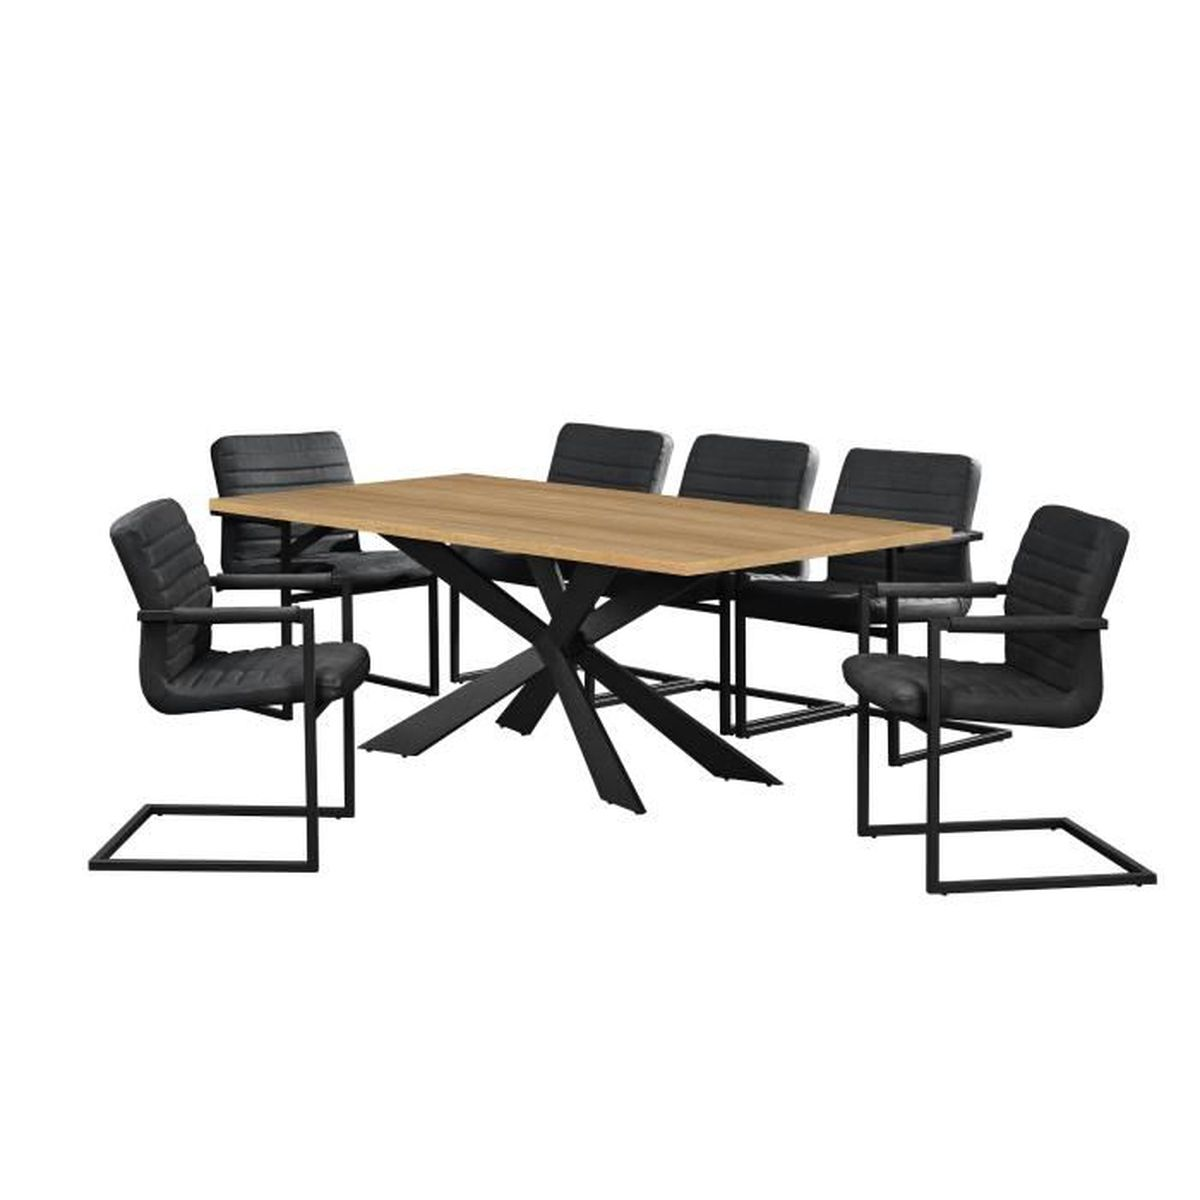 Table de salle manger ch ne brilliant avec 6 for Table de salle a manger de qualite